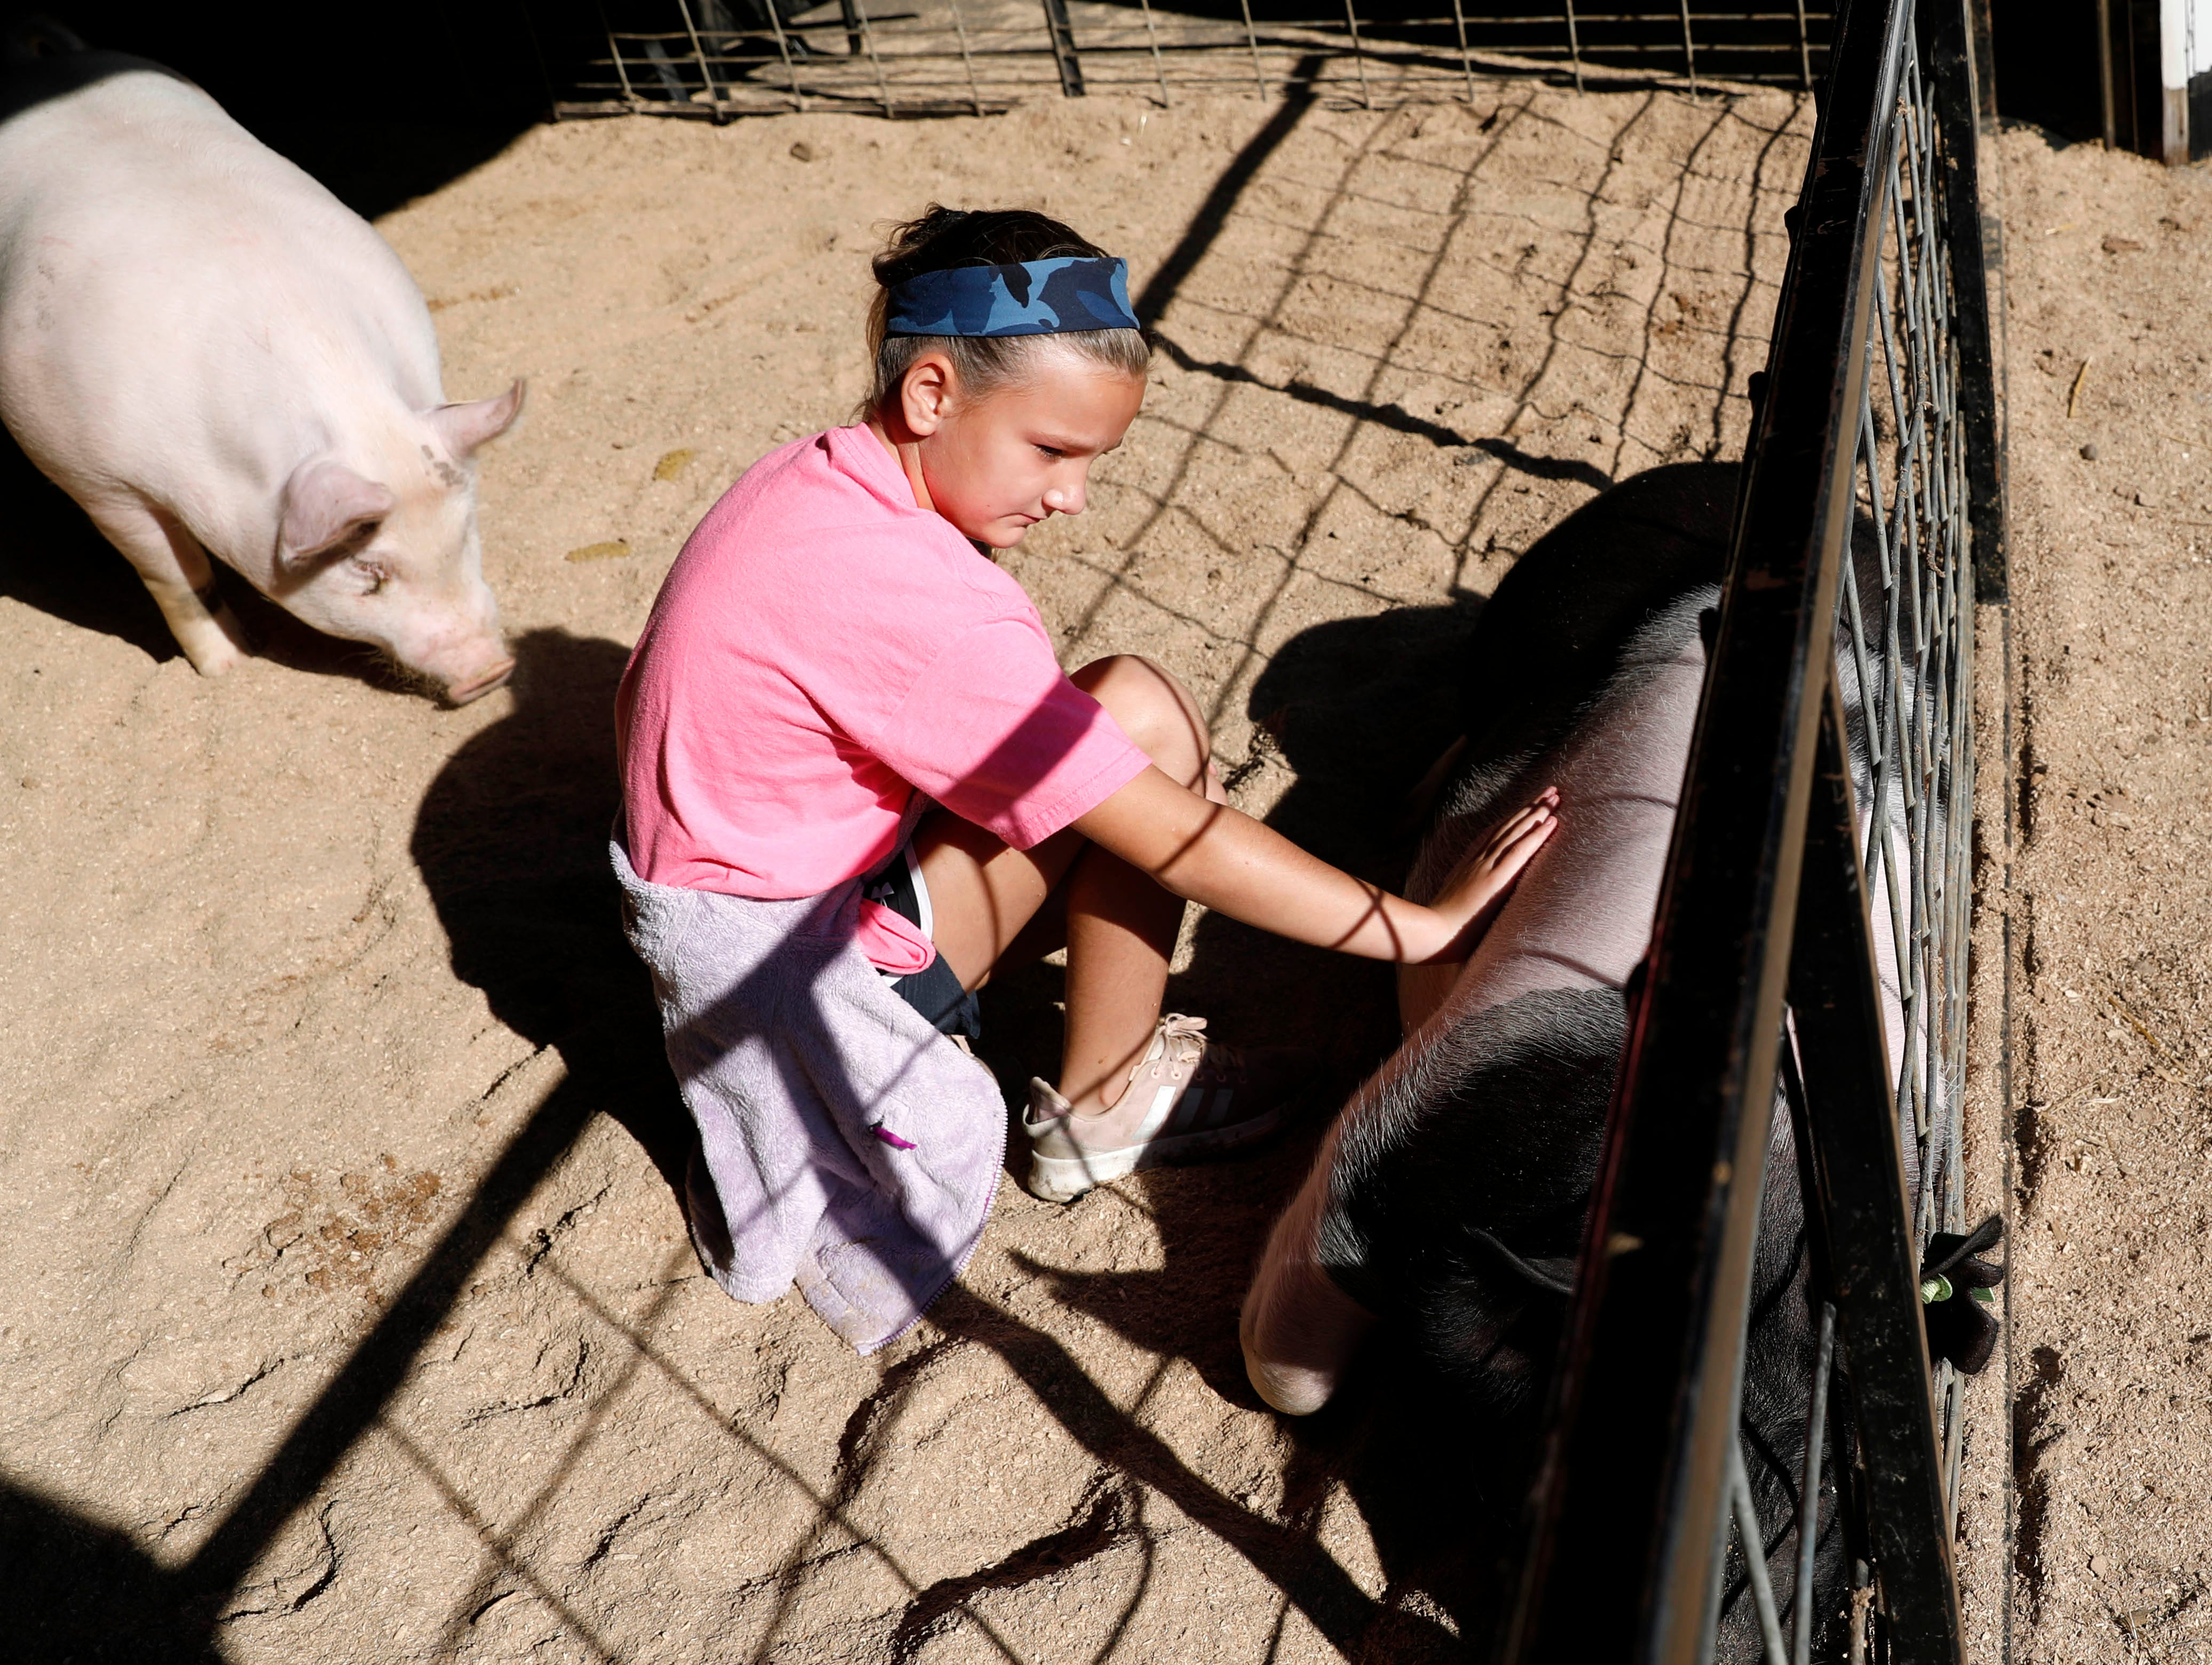 Brinleigh Hoisington, 9, from Baltimore, pets her pig Patches as her brother's pig Lucky sneaks up behind her Wendesday, Oct. 10, 2018, in the swine barn at the Fairfield County Fair in Lancaster.